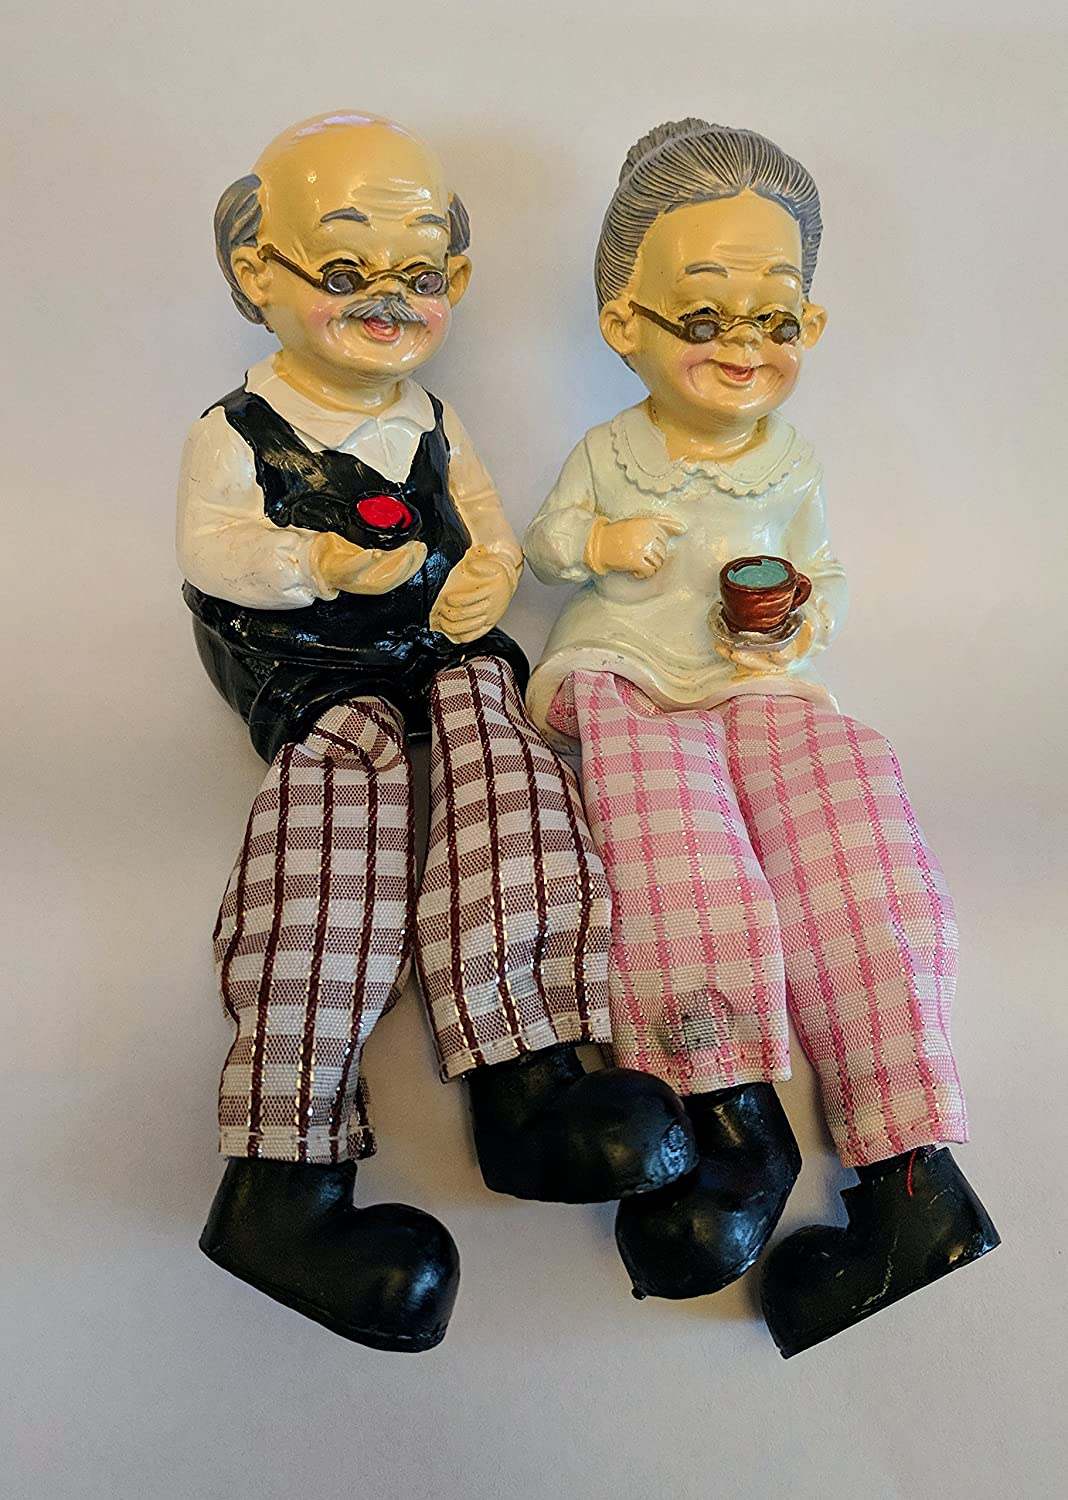 Wonderful Store Pack (2) Decor Shelf Sitters Dolls Grandfather & Grandmother. A Beautiful Ornament For Every Home Or Office